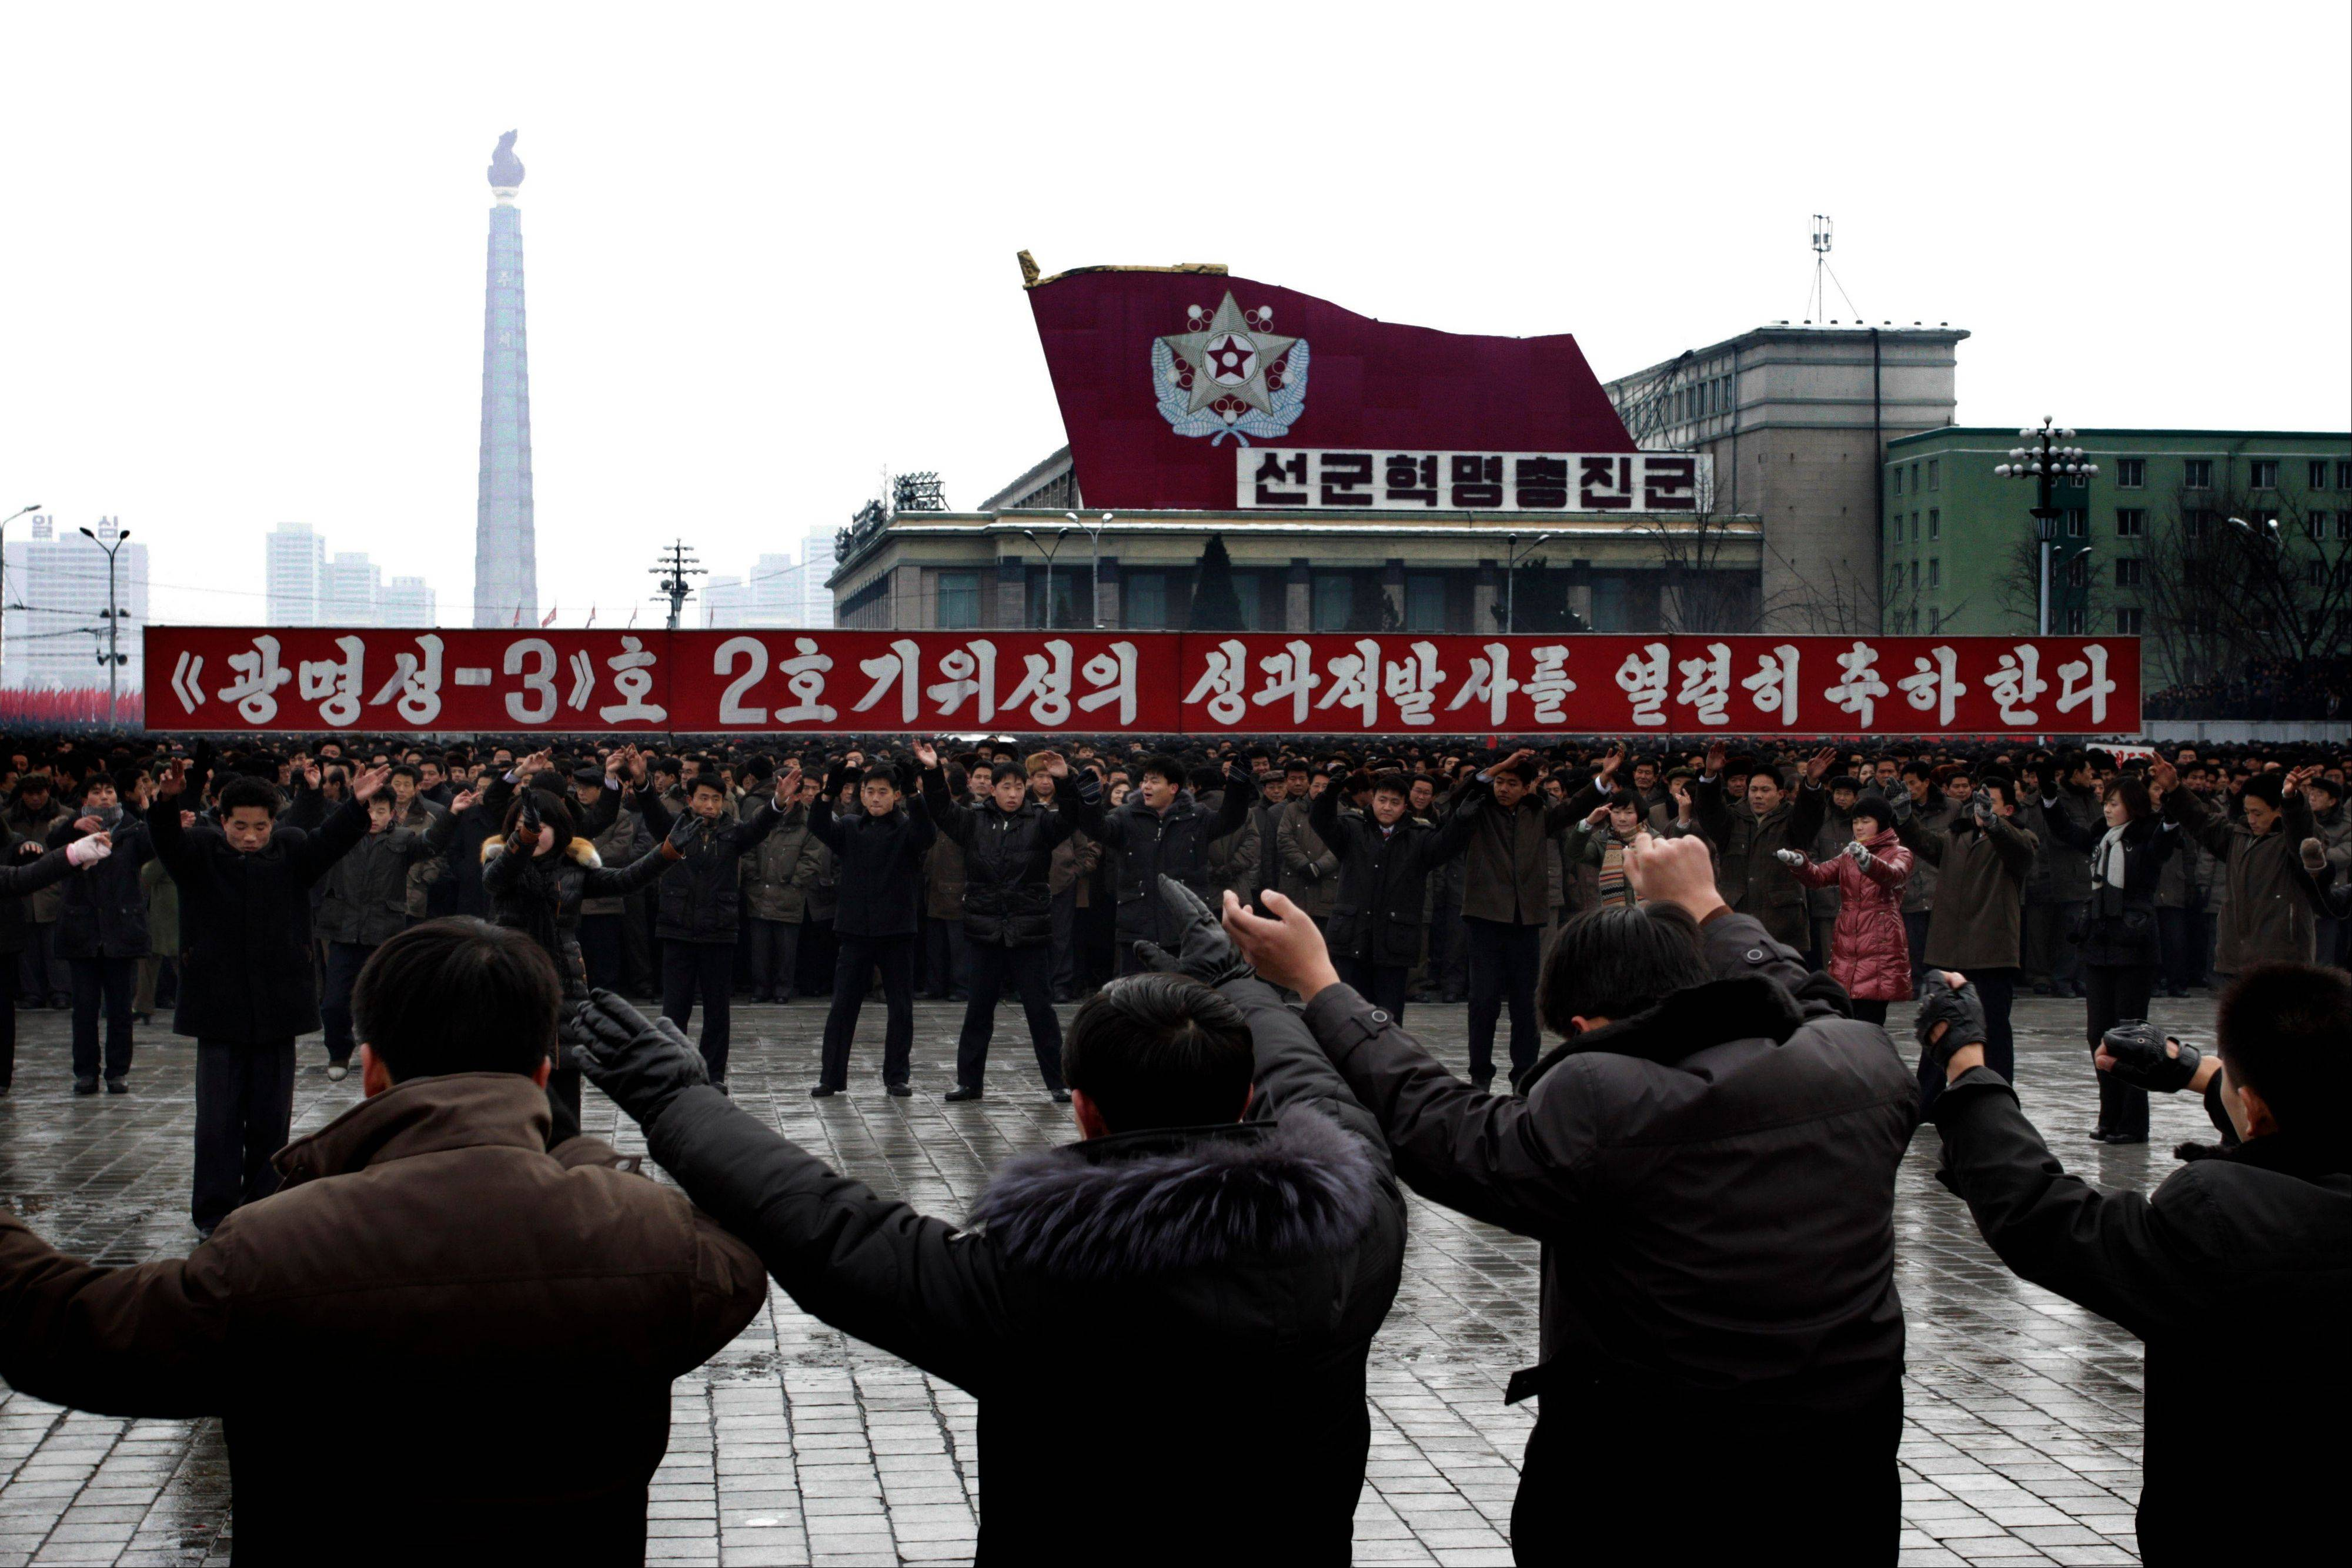 "North Koreans dance near a slogan which reads ""(we) fervently celebrate the successful launch of the second version of the Kwangmyongsong-3 satellite"" during a mass rally organized to celebrate the success of a rocket launch that sent a satellite into space, on Kim Il Sung Square in Pyongyang, North Korea, Friday, Dec. 14, 2012. As the U.S. led international condemnation of what it calls a covert test of missile technology, top North Korean officials denied the allegations and maintained the country's right to develop its space program."